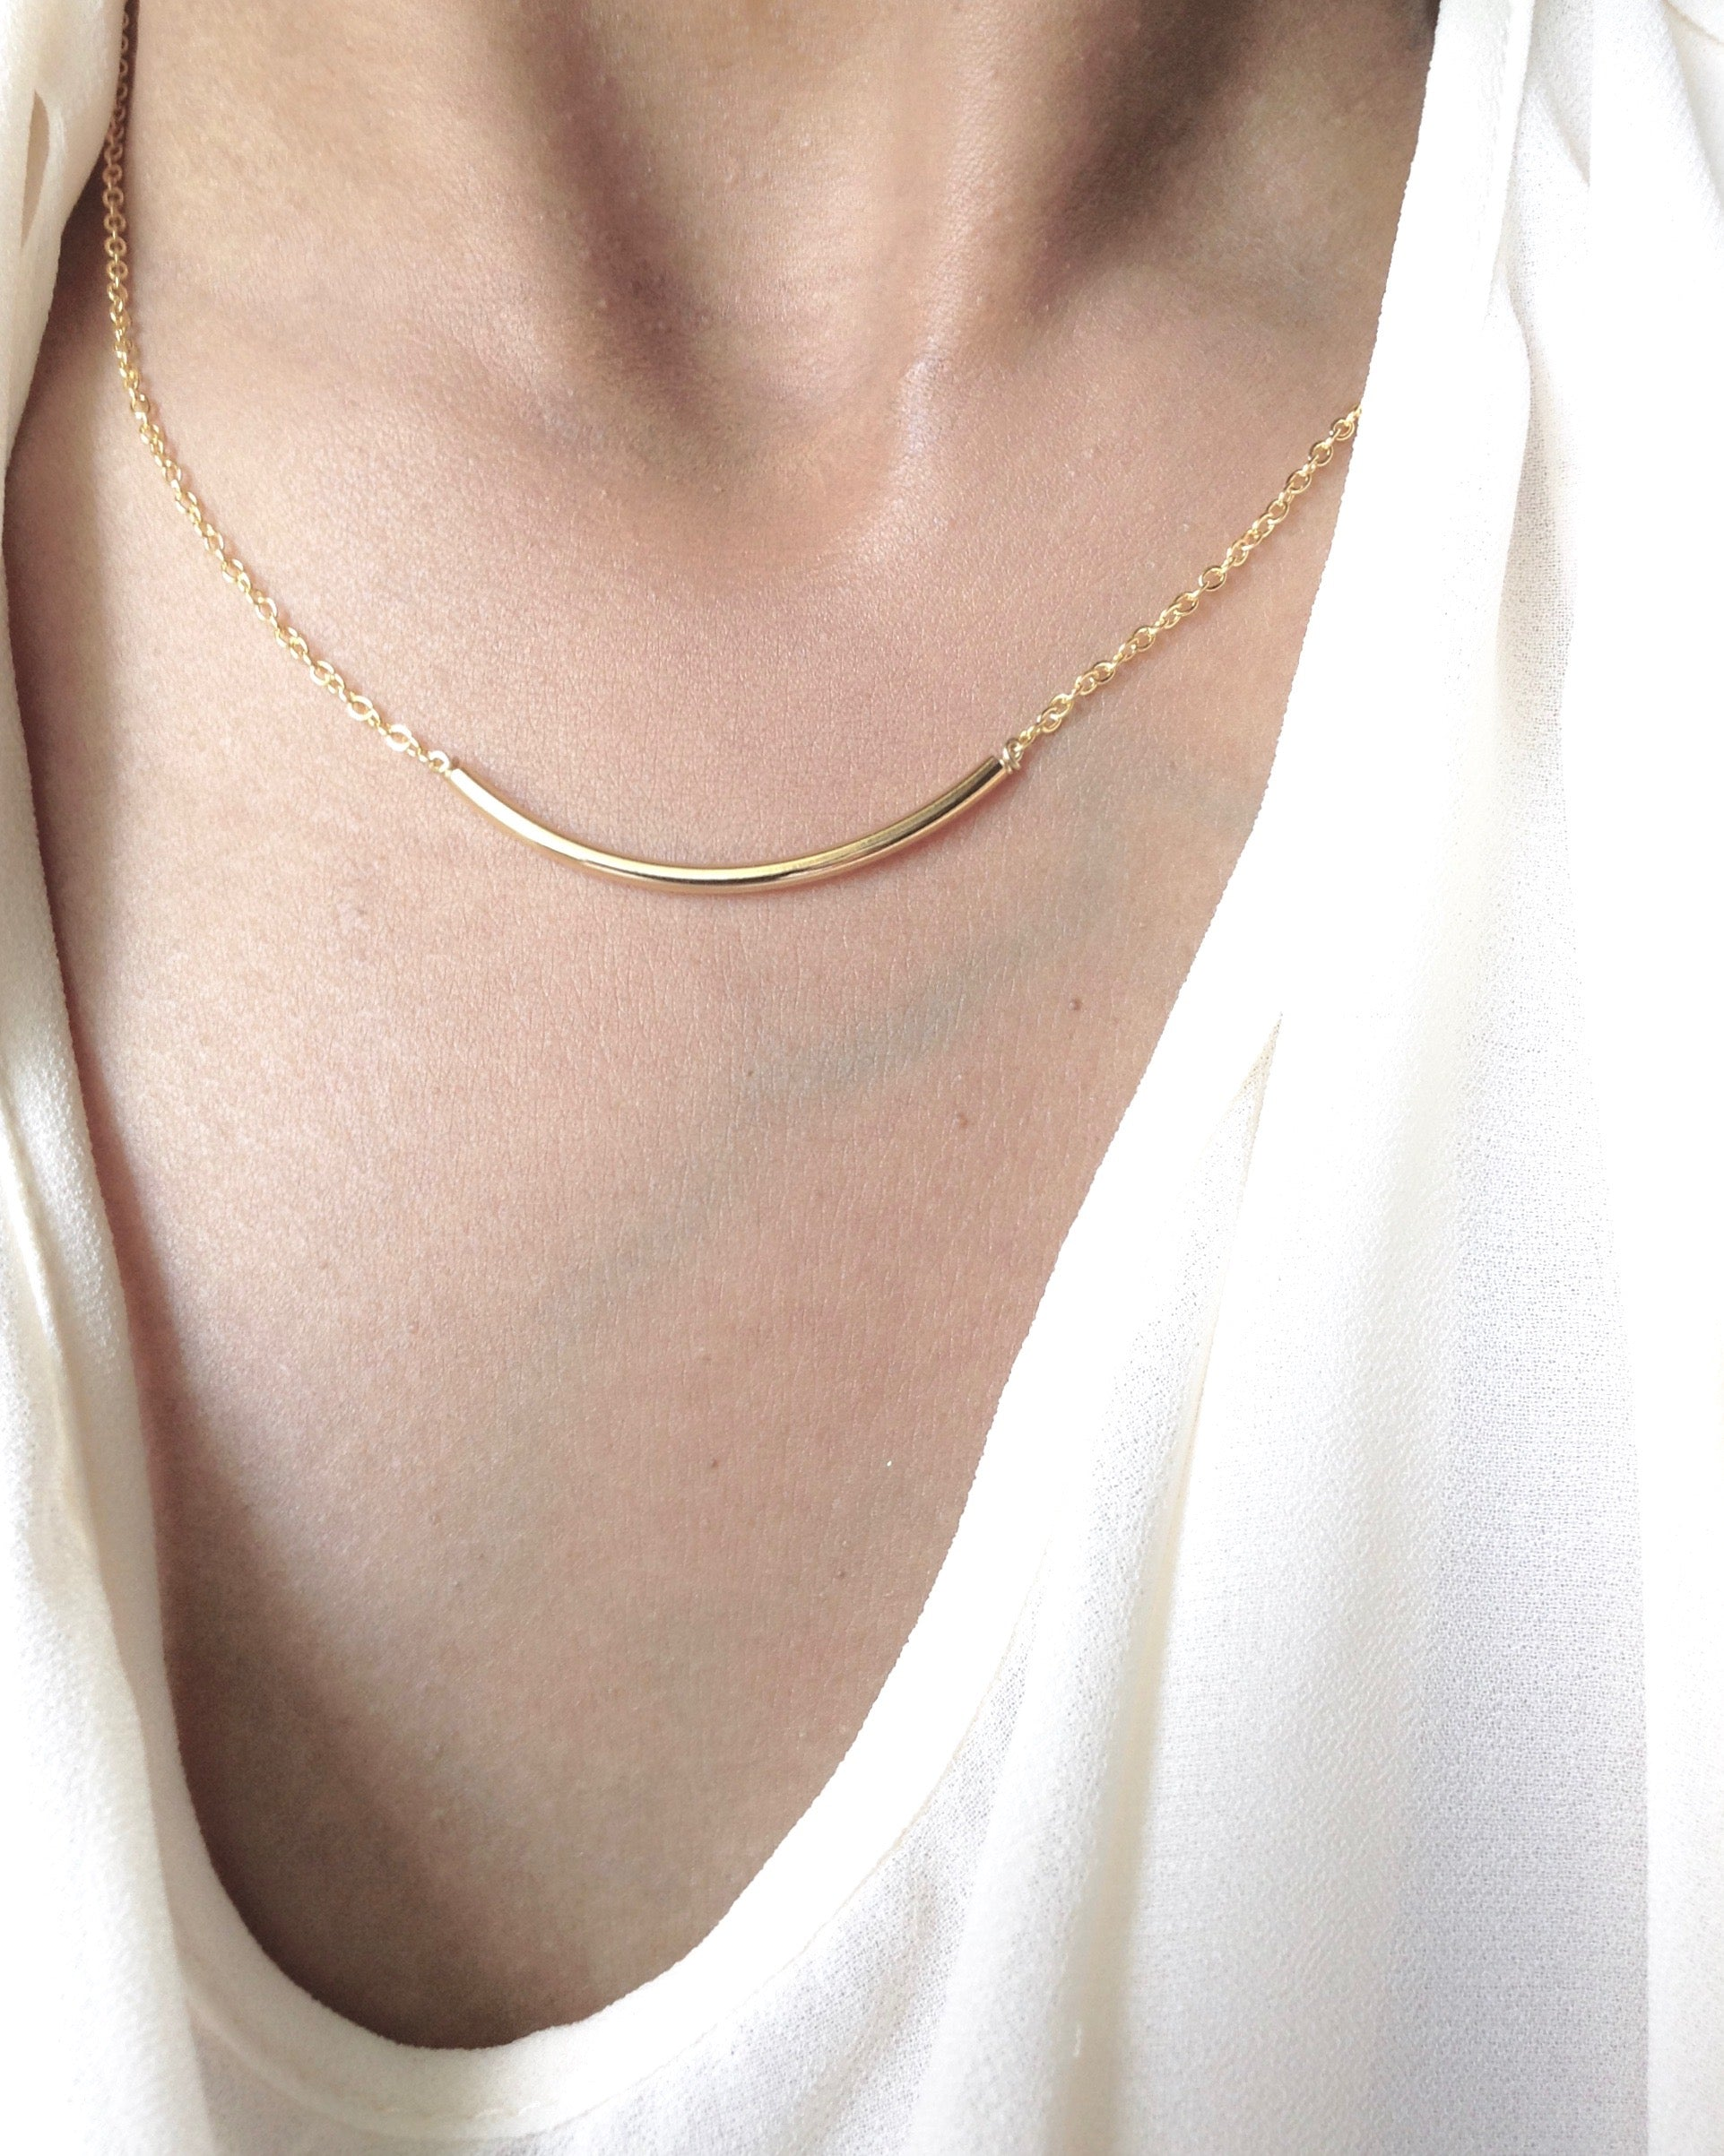 Thin Bar Necklace in Gold Filled or Sterling Silver | Minimalist Everyday Necklace | IB Jewelry